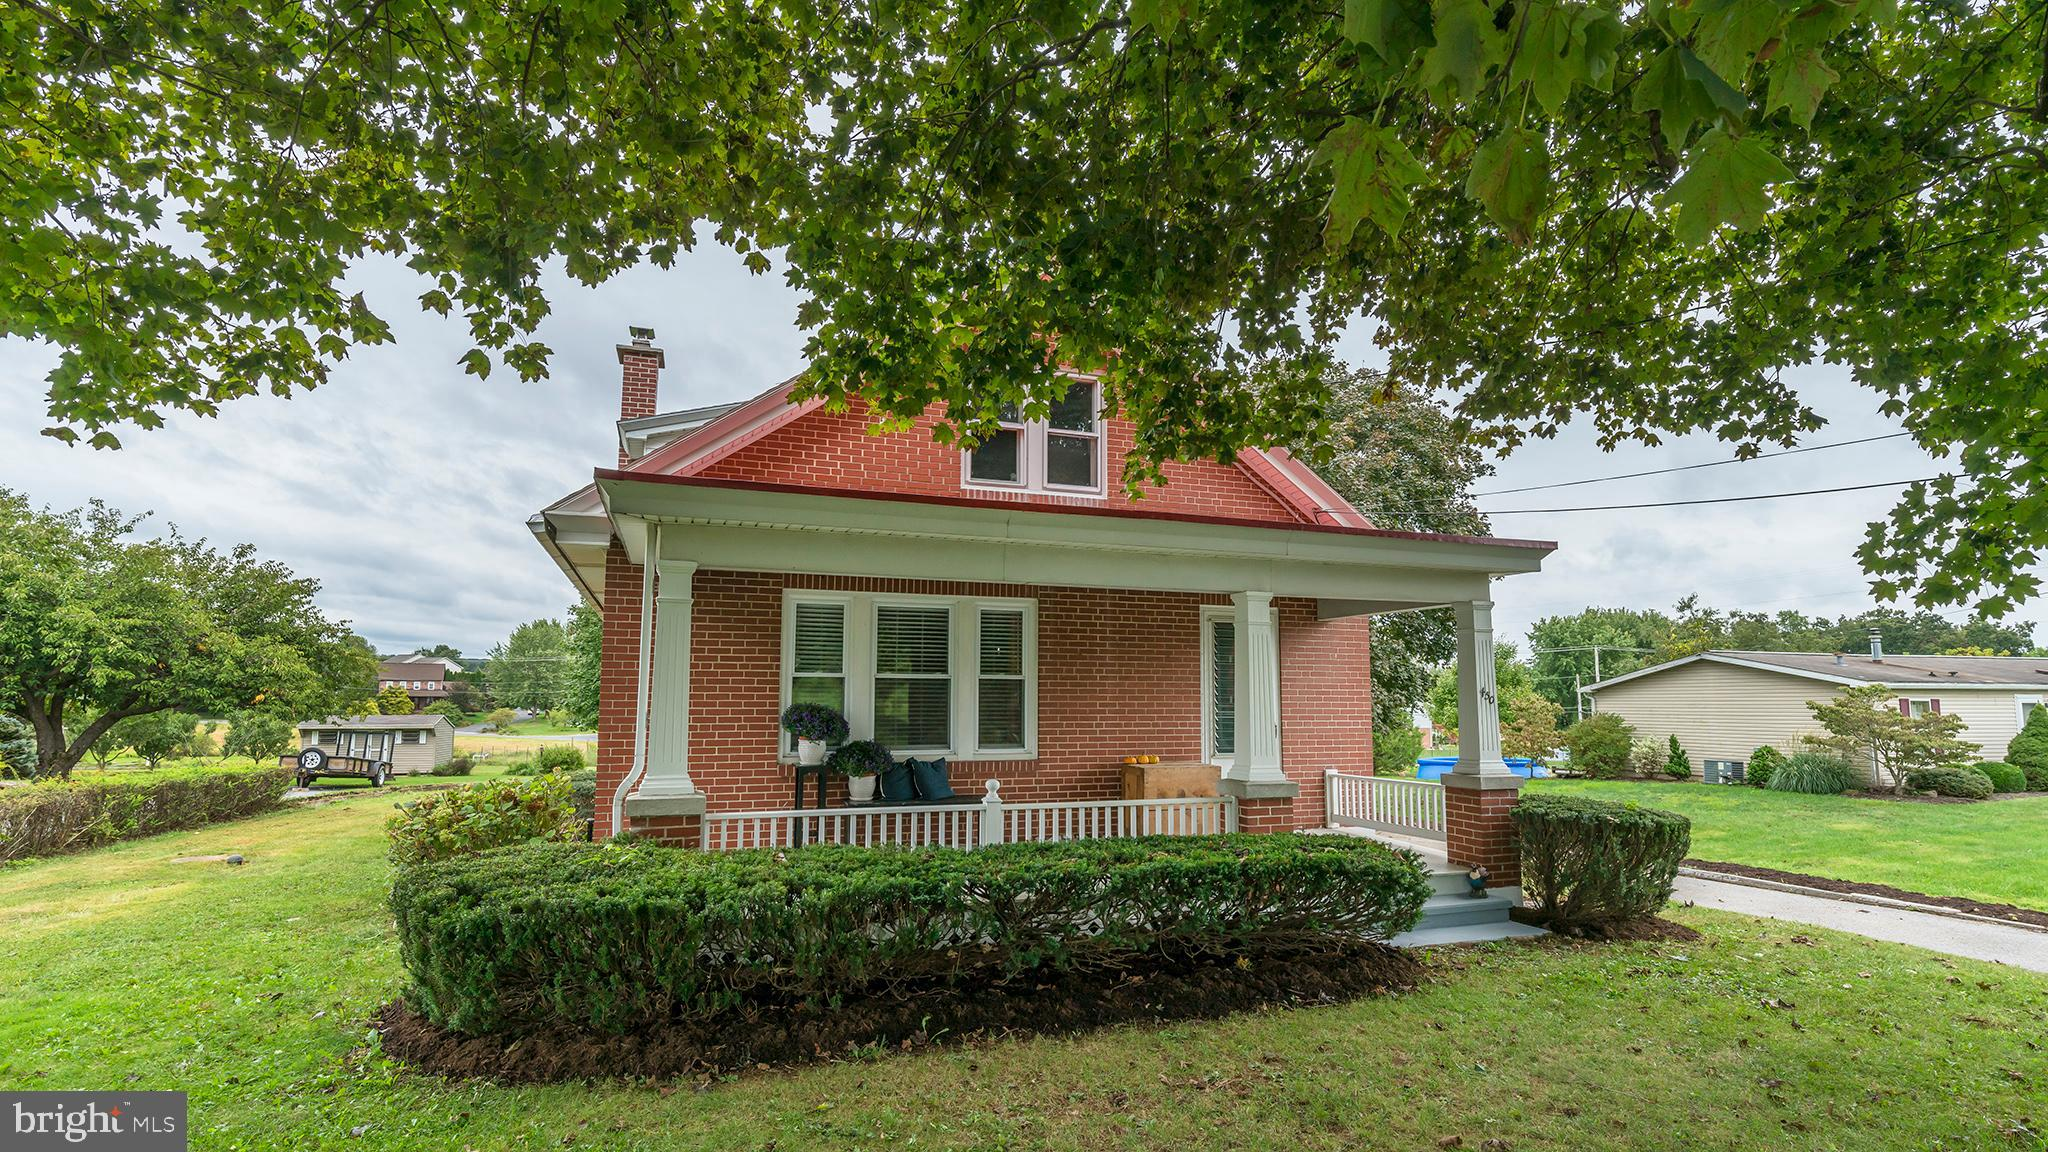 450 W ROUTE 897, REINHOLDS, PA 17569